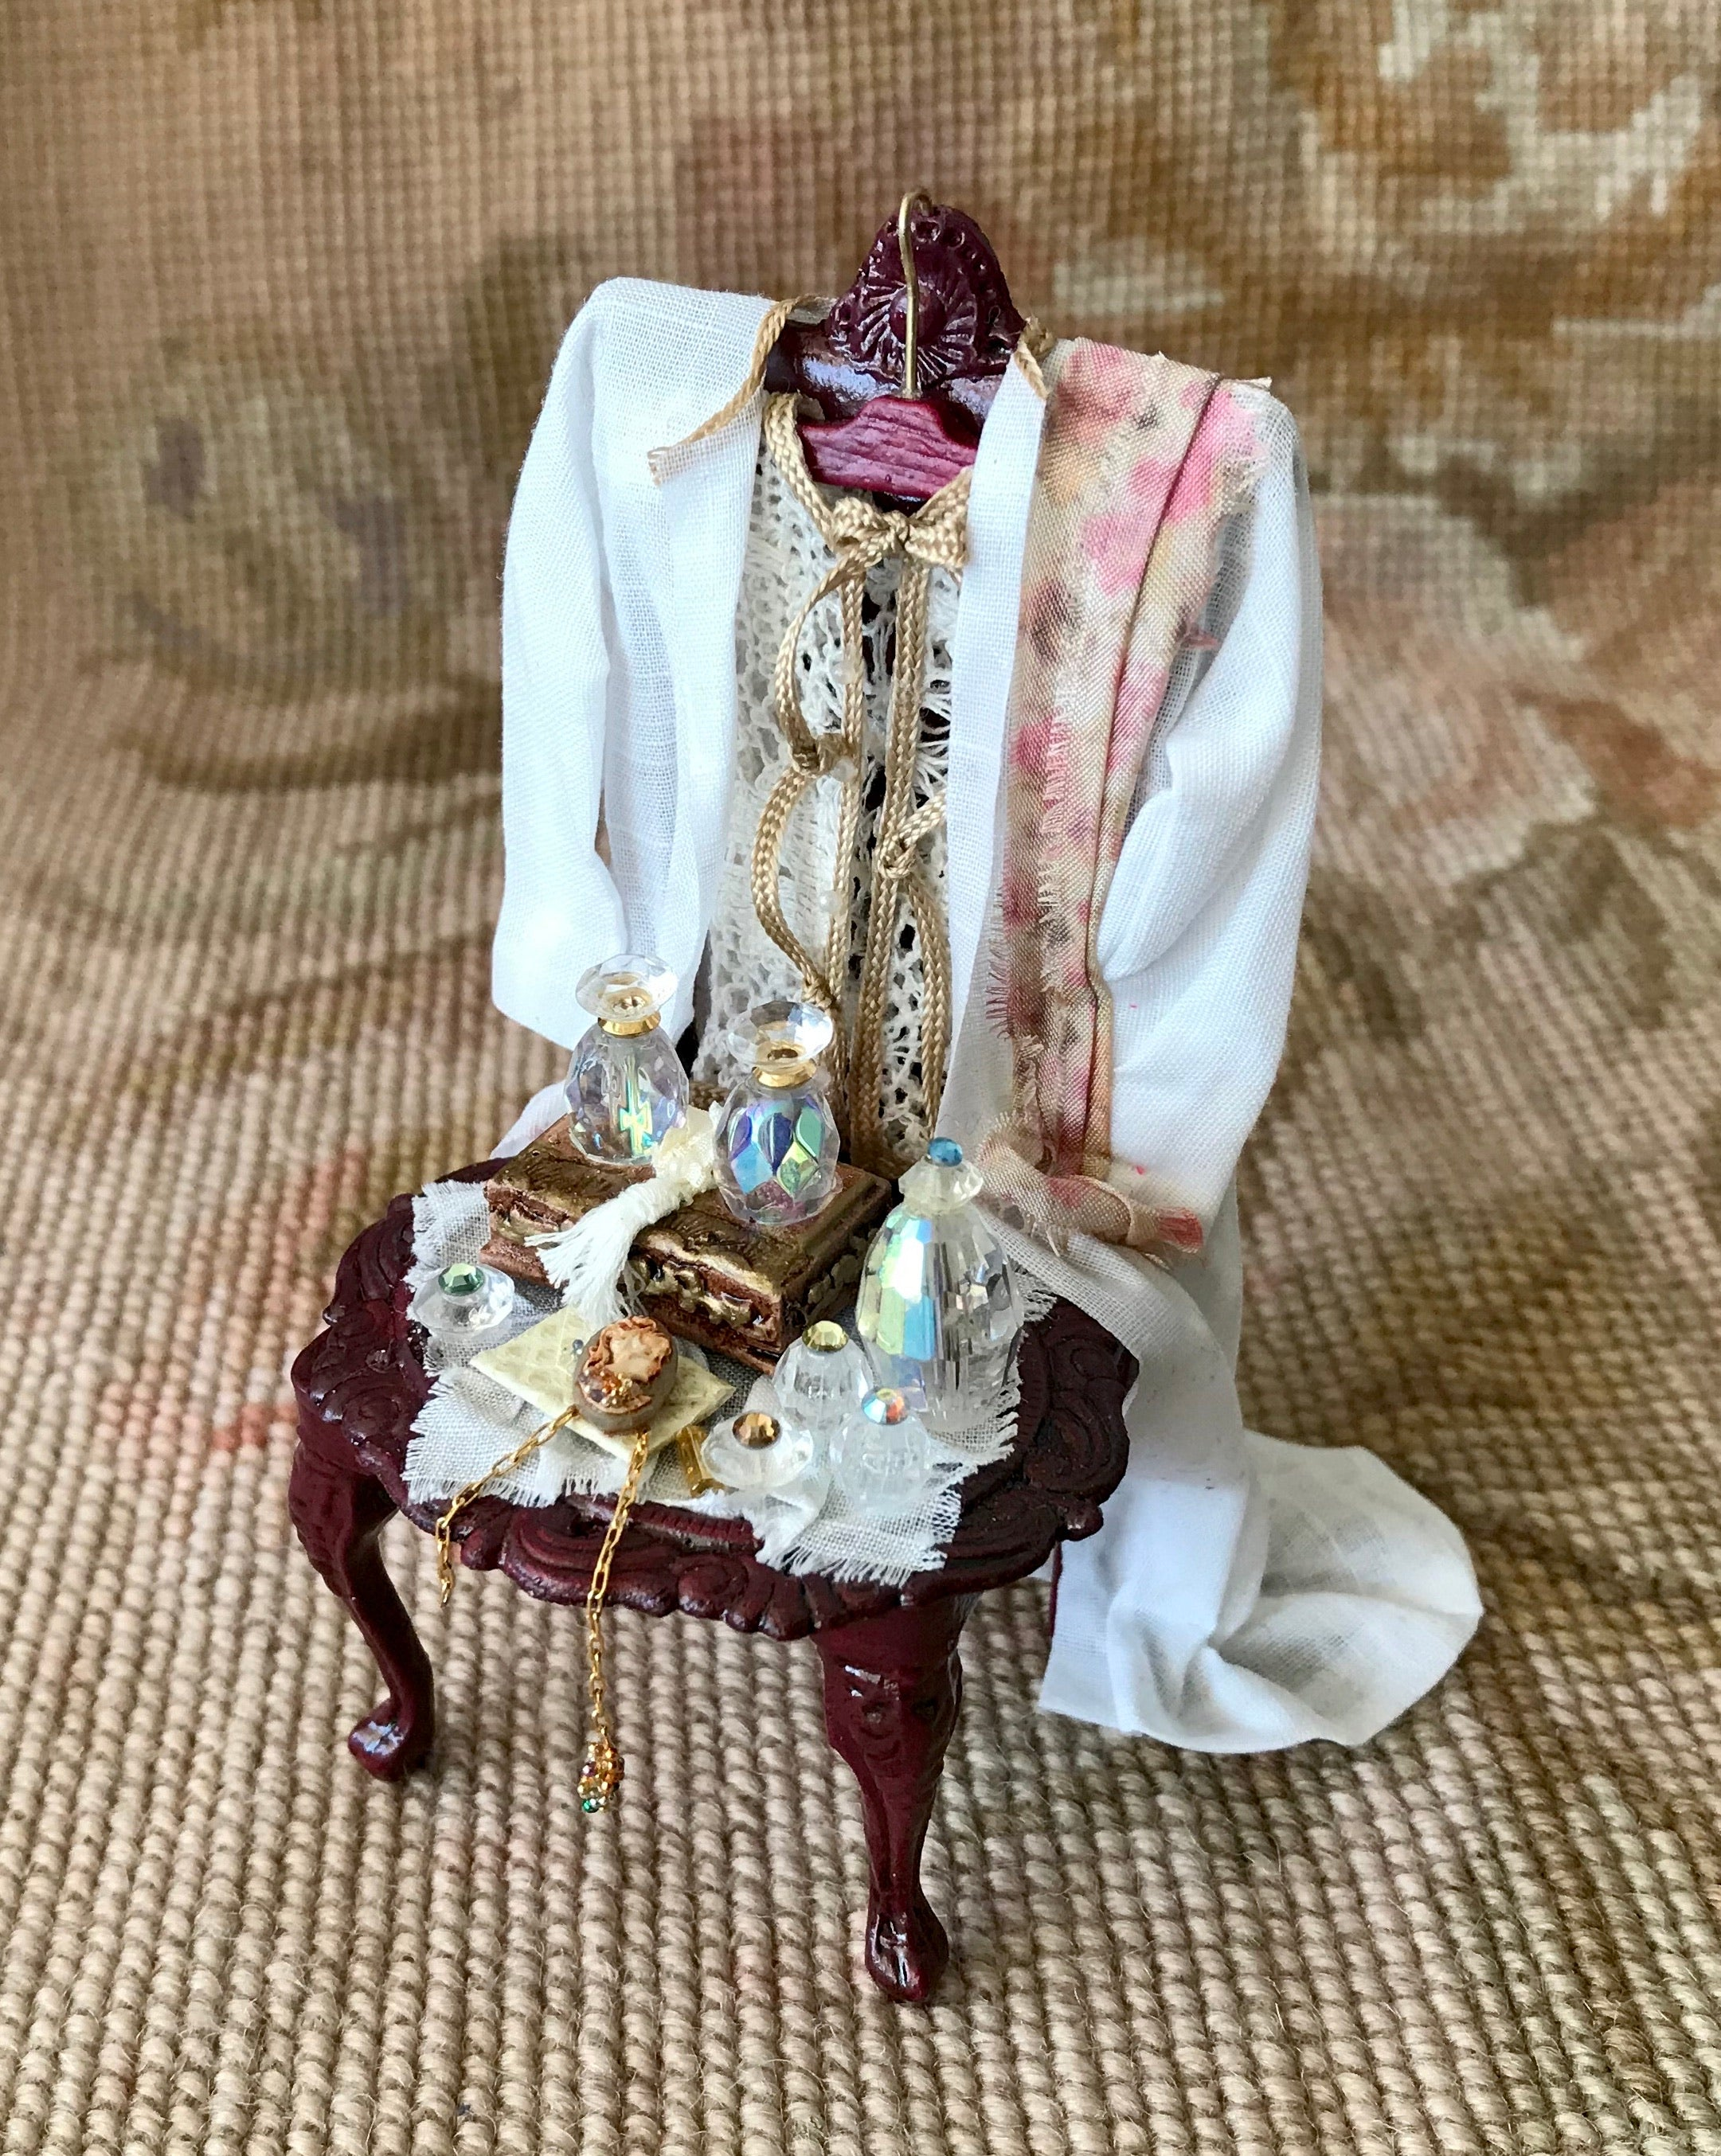 Valet Chair Dressed with Wearable Clothing Outfit Collection Female Heidi Ott 1:12 Dollhouse Miniature